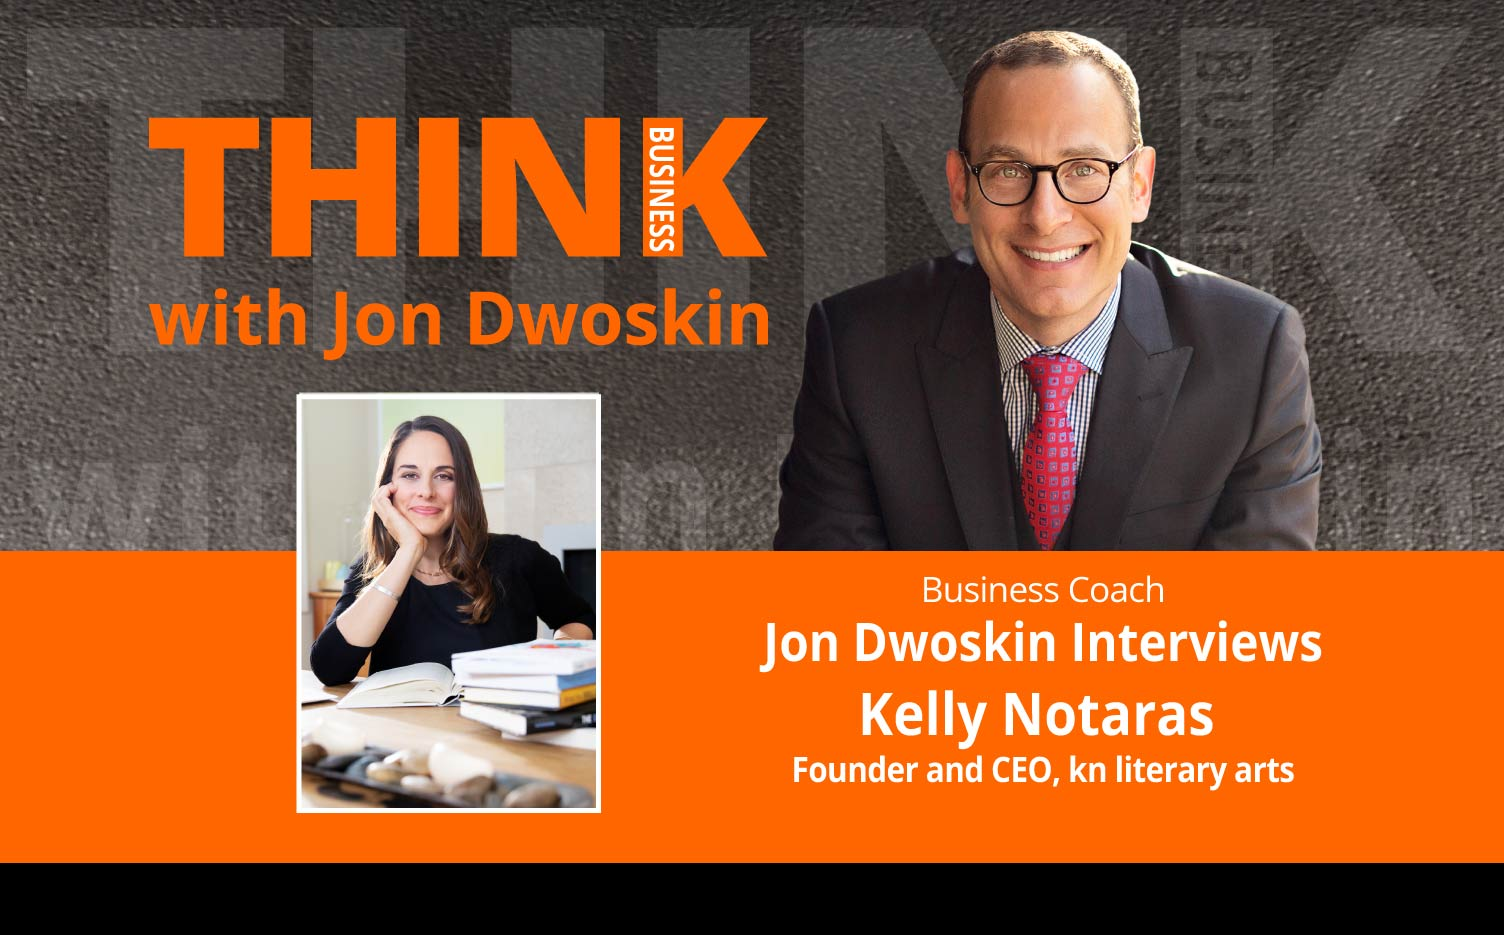 THINK Business Podcast: Jon Dwoskin Interviews Kelly Notaras, Founder and CEO, kn literary arts